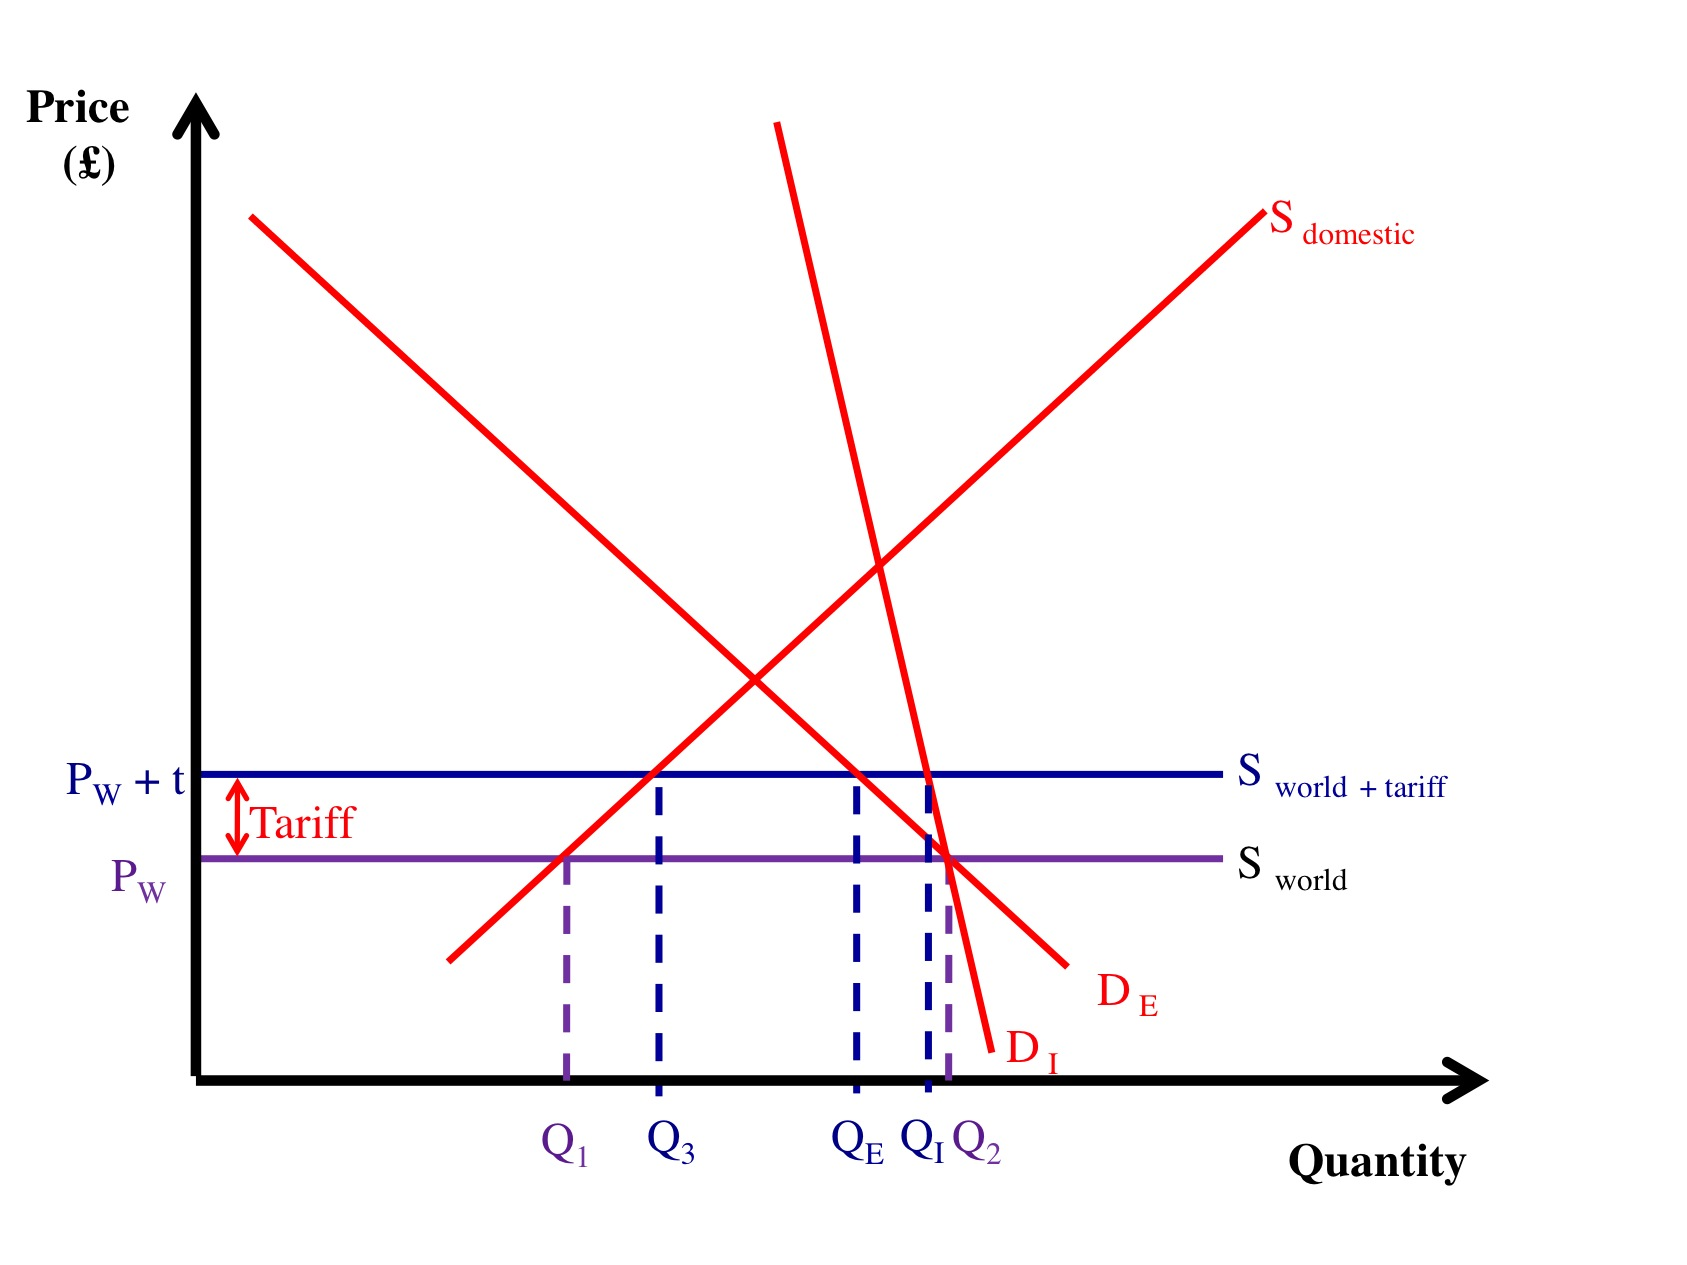 Trade explain how the tariff impacts the two different demand curves in the above diagram pooptronica Choice Image